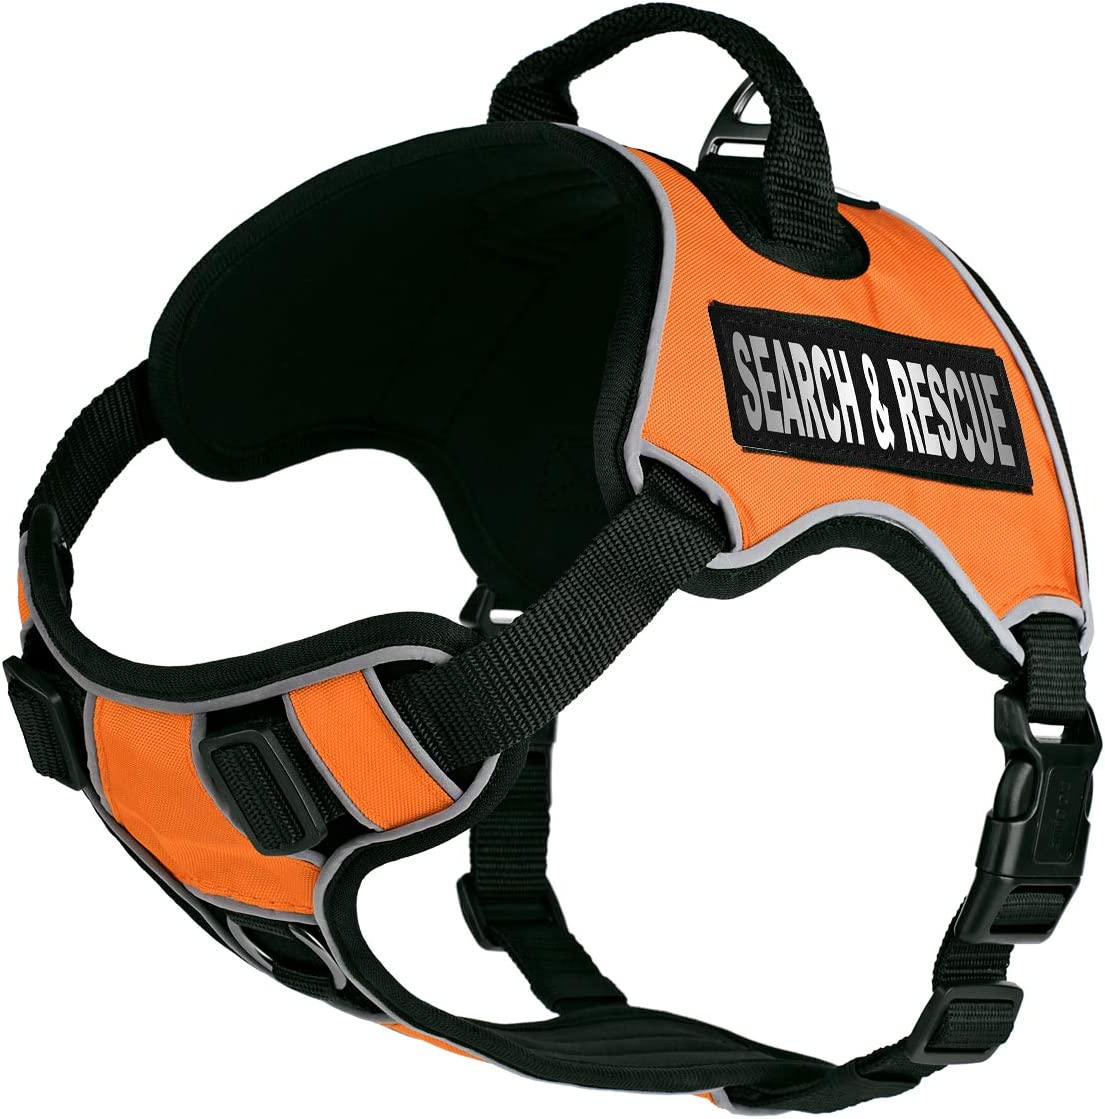 Dogline Quest No-Pull Dog Harness Reflectiv Search Large-scale sale Max 41% OFF with Rescue